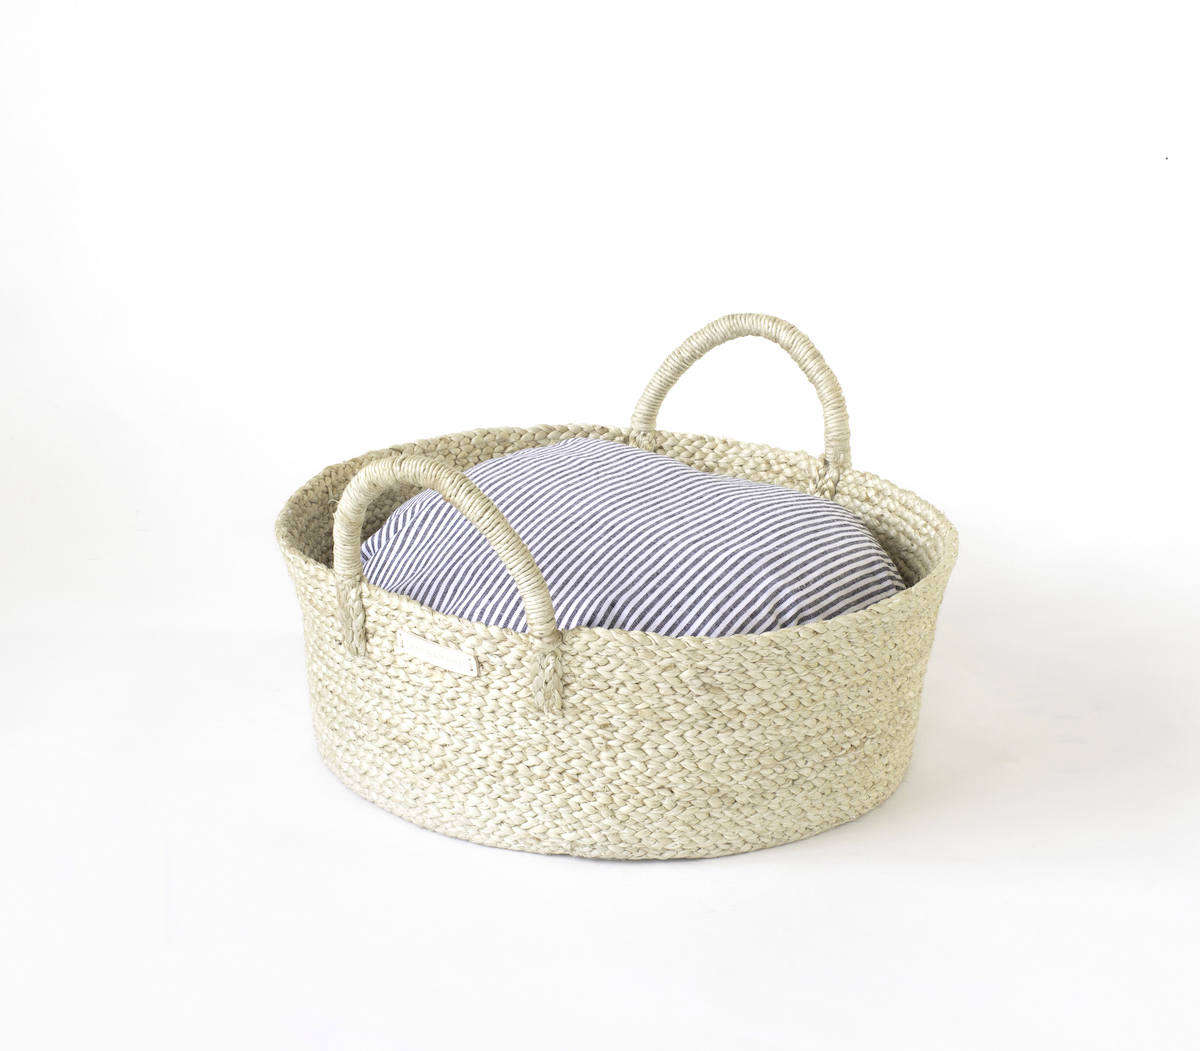 From my own brand, Faunamade, which offers high-quality basket beds for cats and small dogs: The Basket Bed in Stripe has a Fair Trade Certified basket made of eco-friendly jute, a washable cushion made in the US, and a durable cover sewn from 0 percent cotton designer fabric; $src=